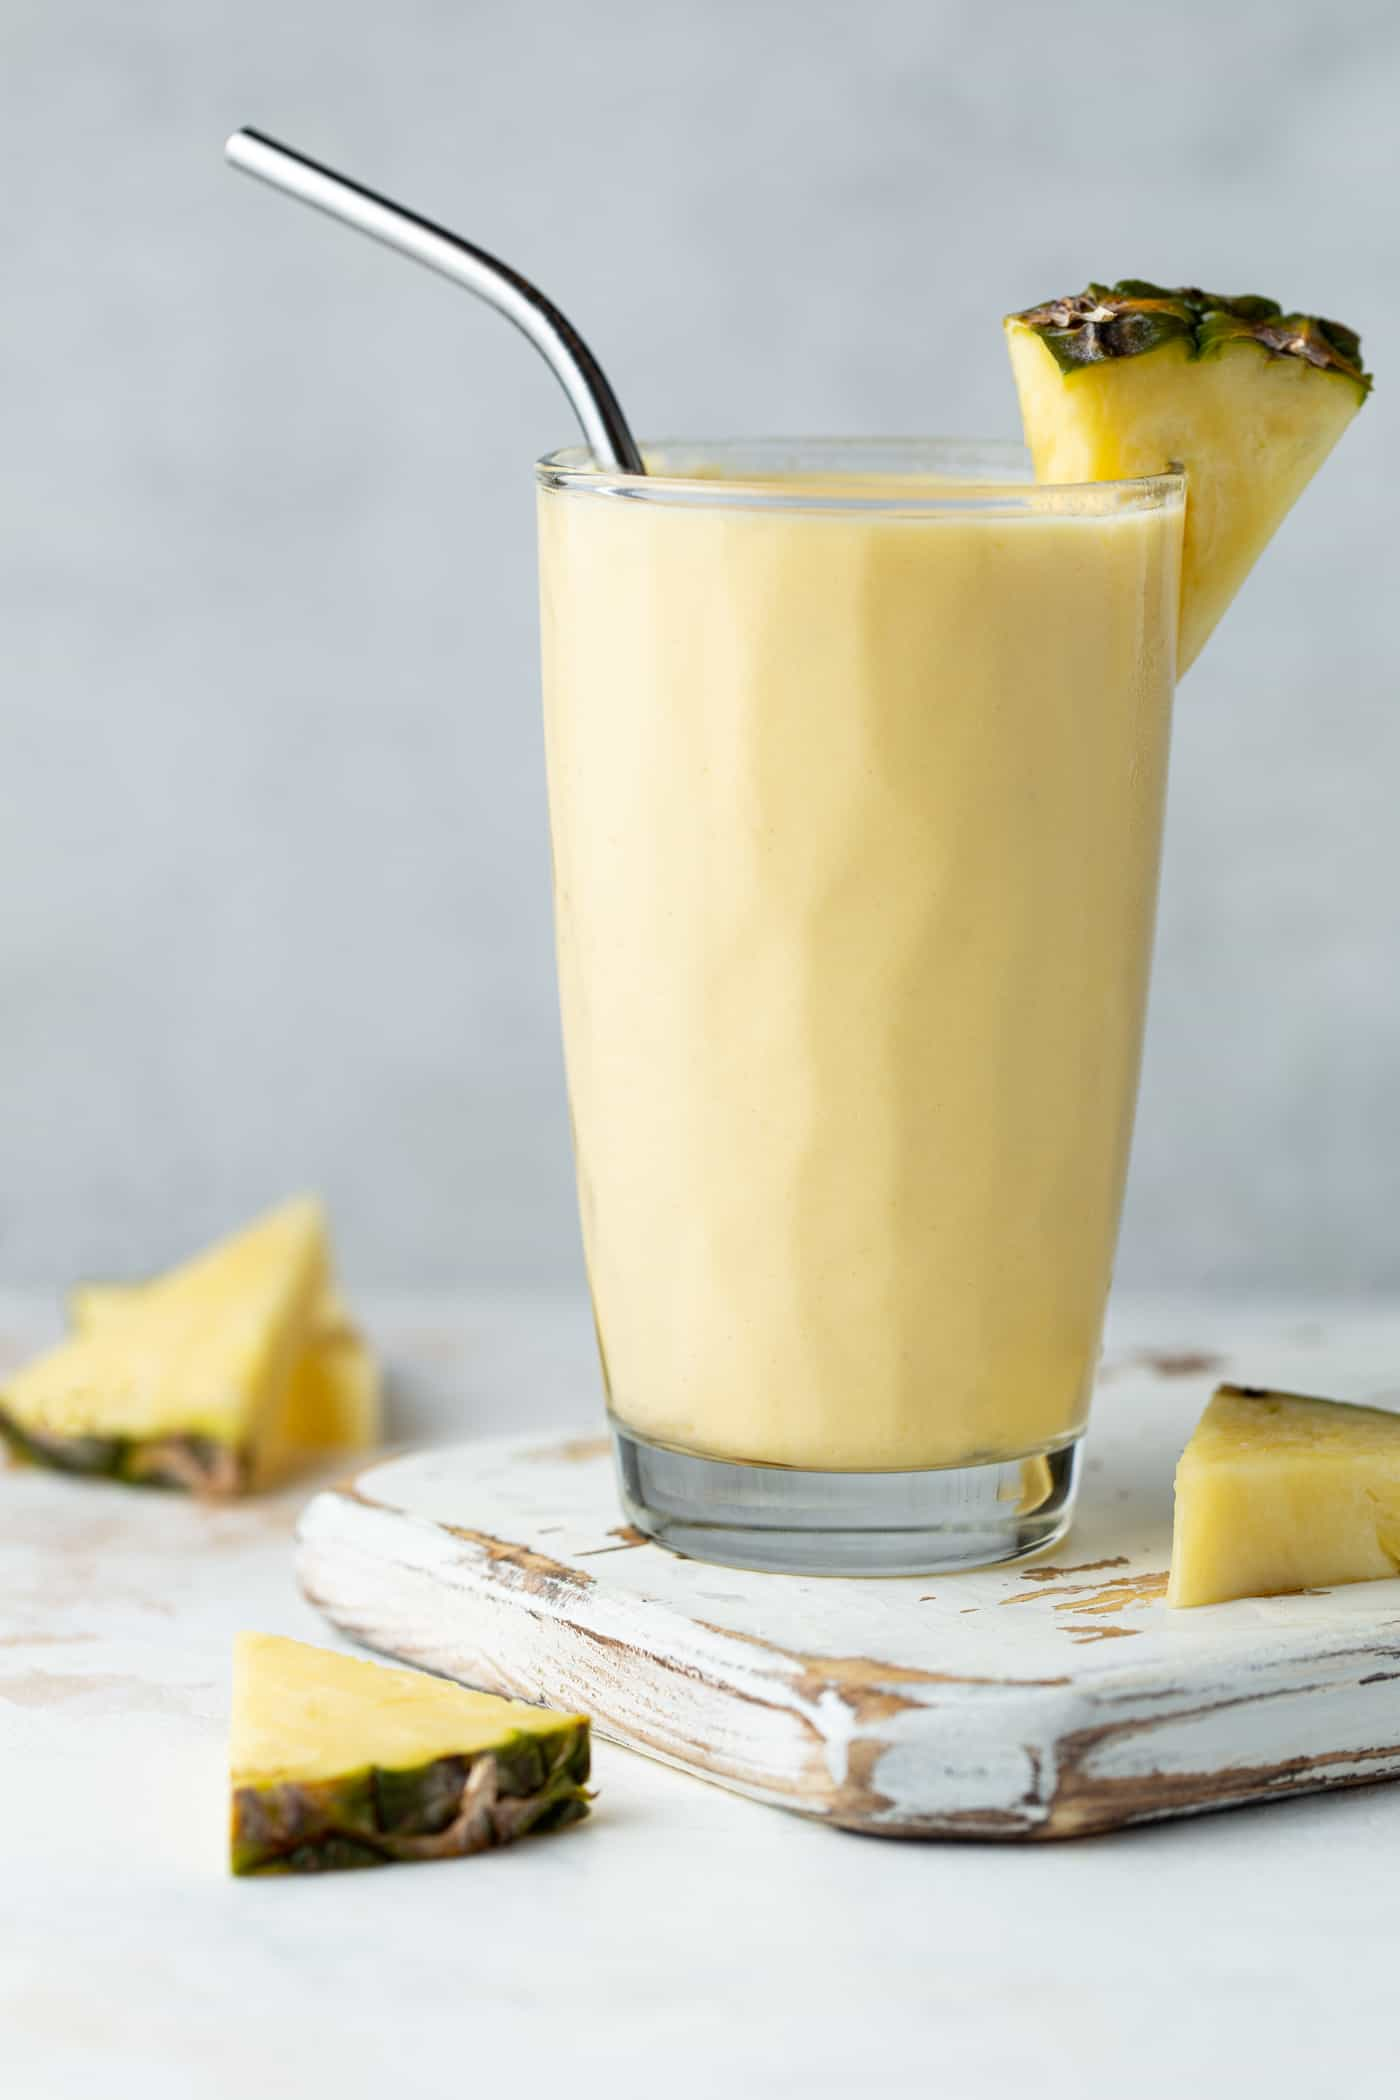 Tall glass of Mango Pineapple Smoothie on a white cutting board. Garnished with a stainless steel straw and a fresh pineapple wedge.